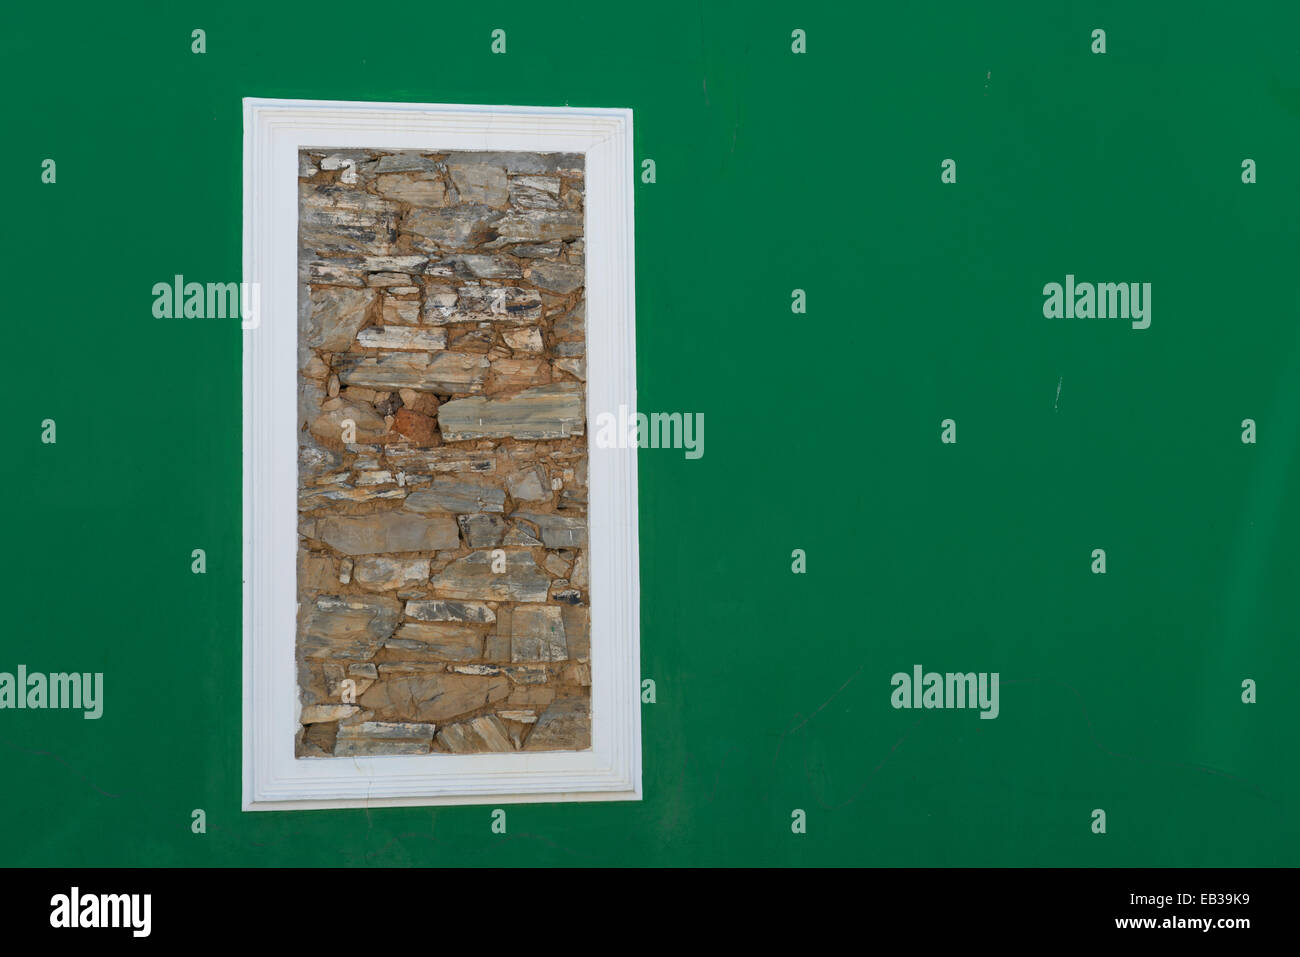 Stonewalled window in a green wall, Bo Kaap, Cape Town, South Africa Stock Photo